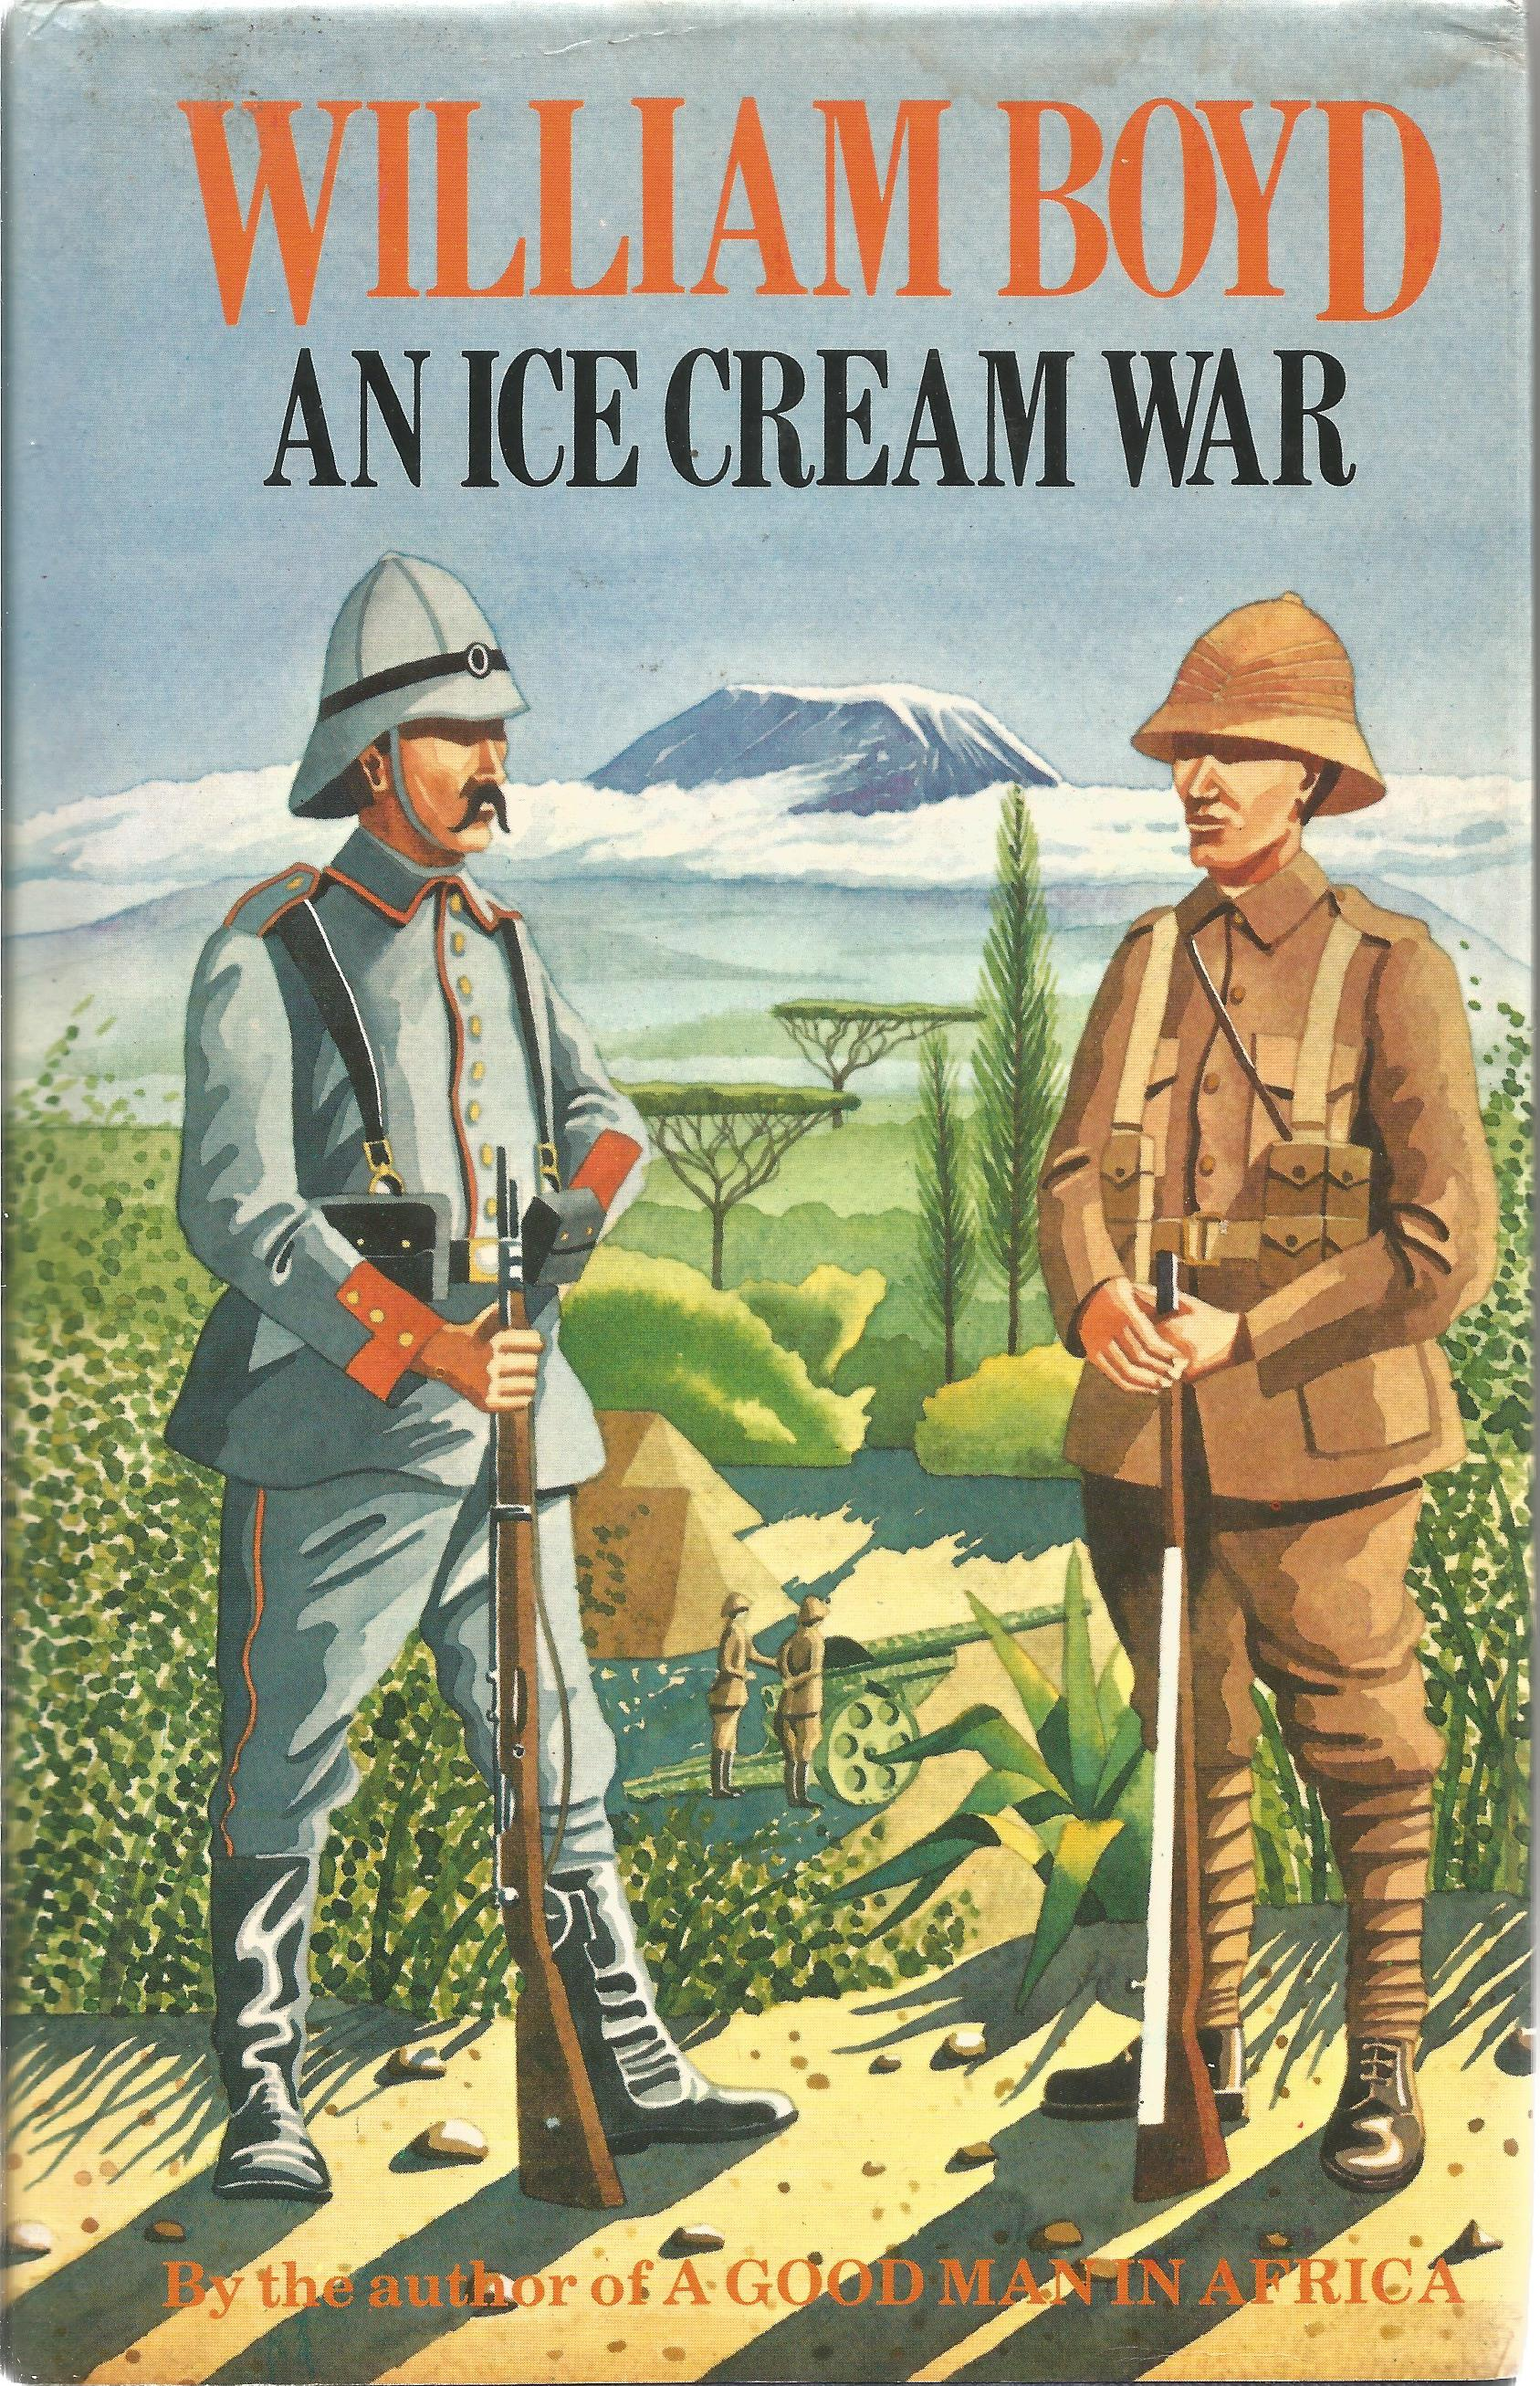 William Boyd Hardback Book An Ice Cream War signed by the Author on Title Page and Dated 18th August